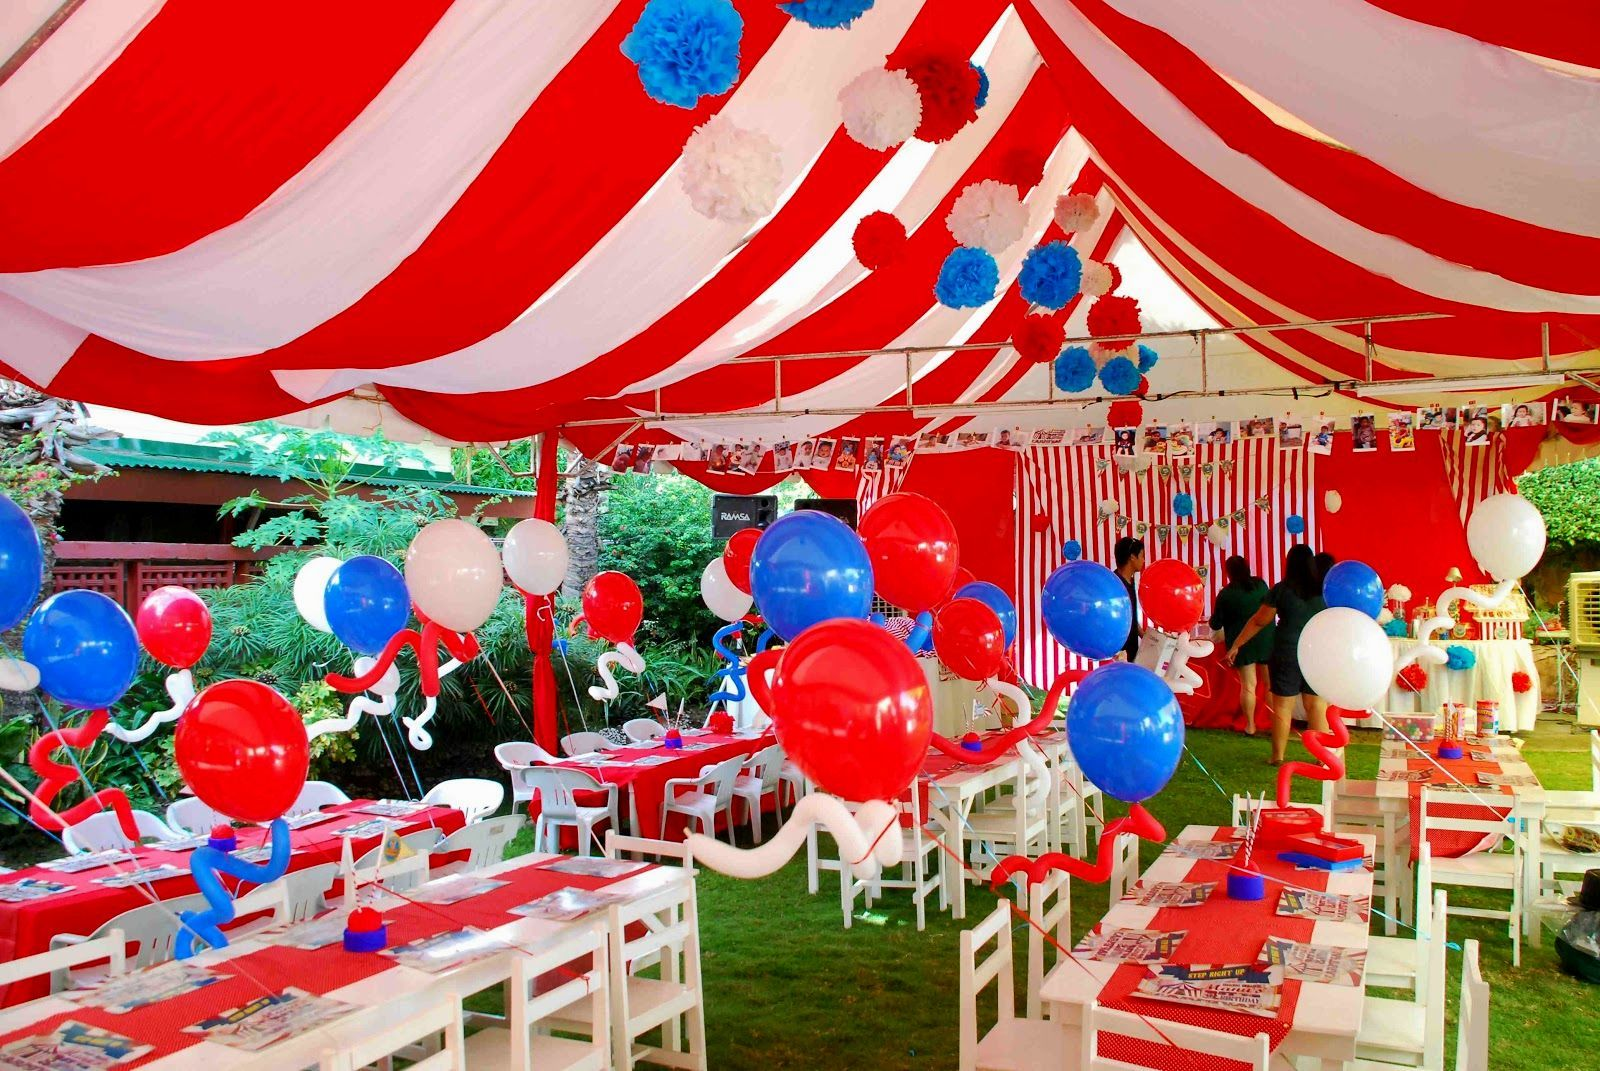 carnival theme party decoration ideas